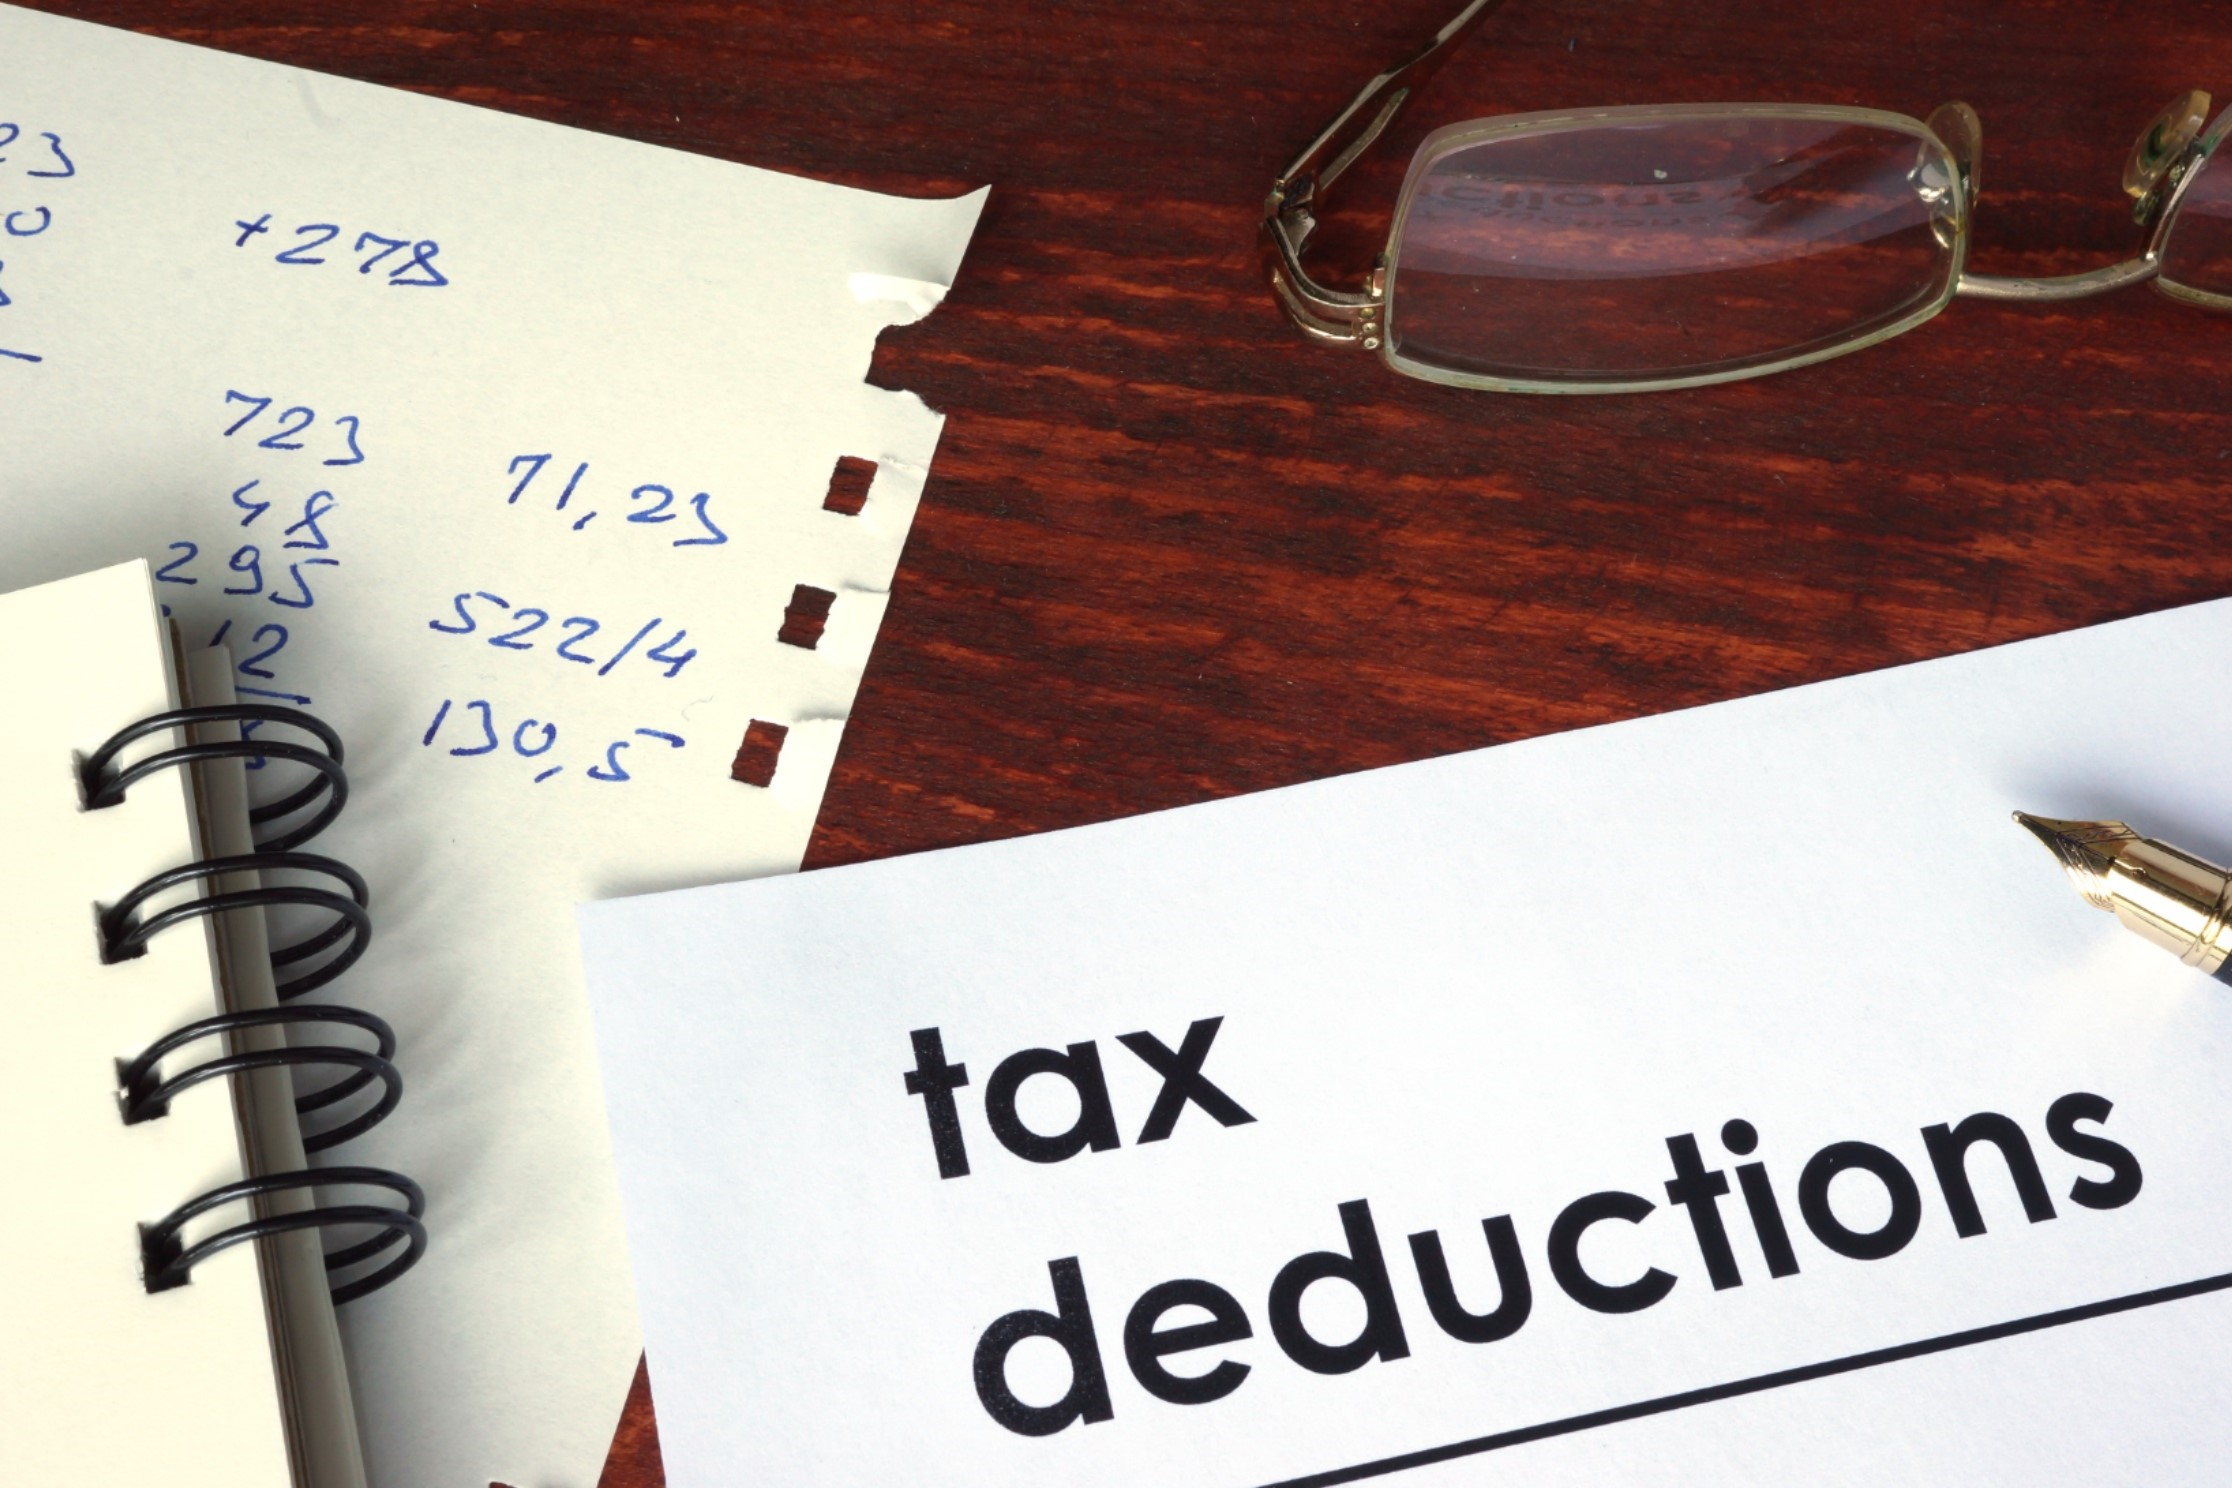 Frequently Asked Questions About Tax Deductions